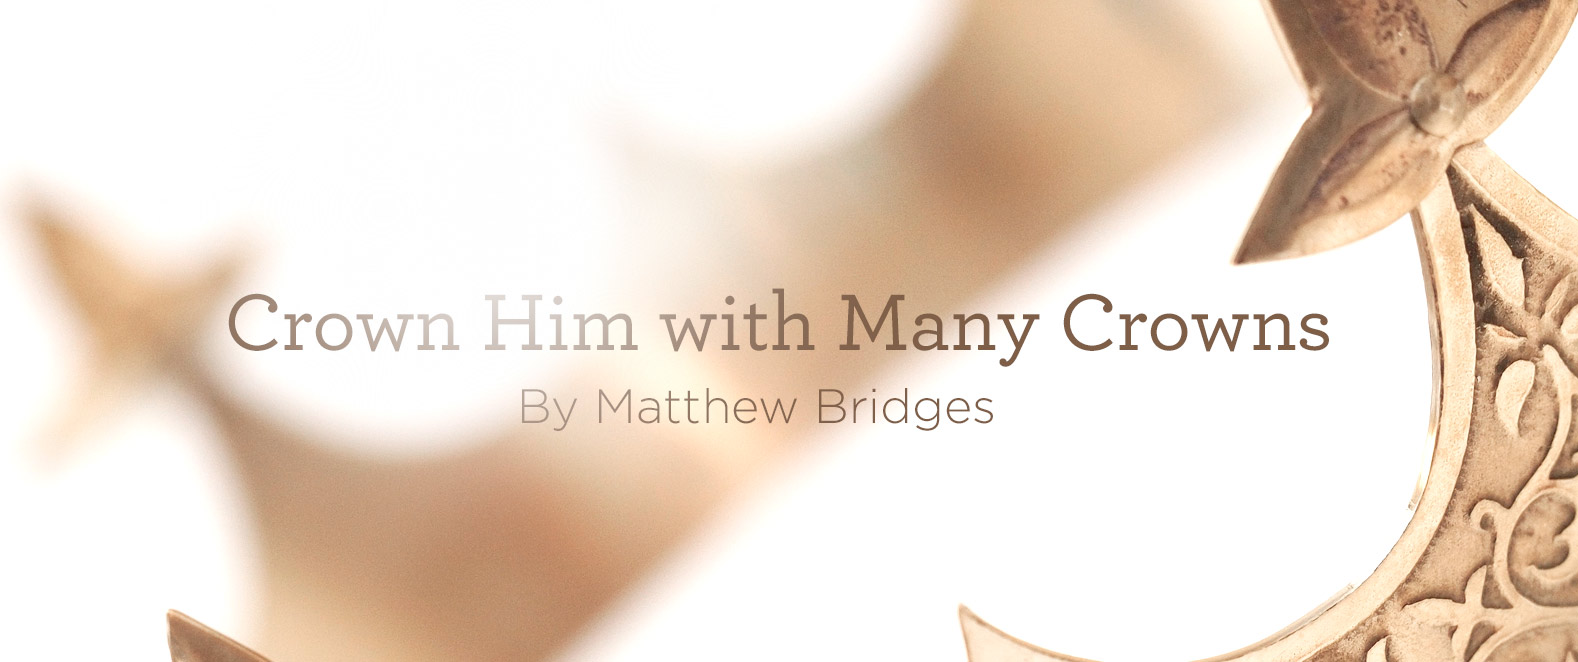 thumbnail image for Hymn: Crown Him with Many Crowns